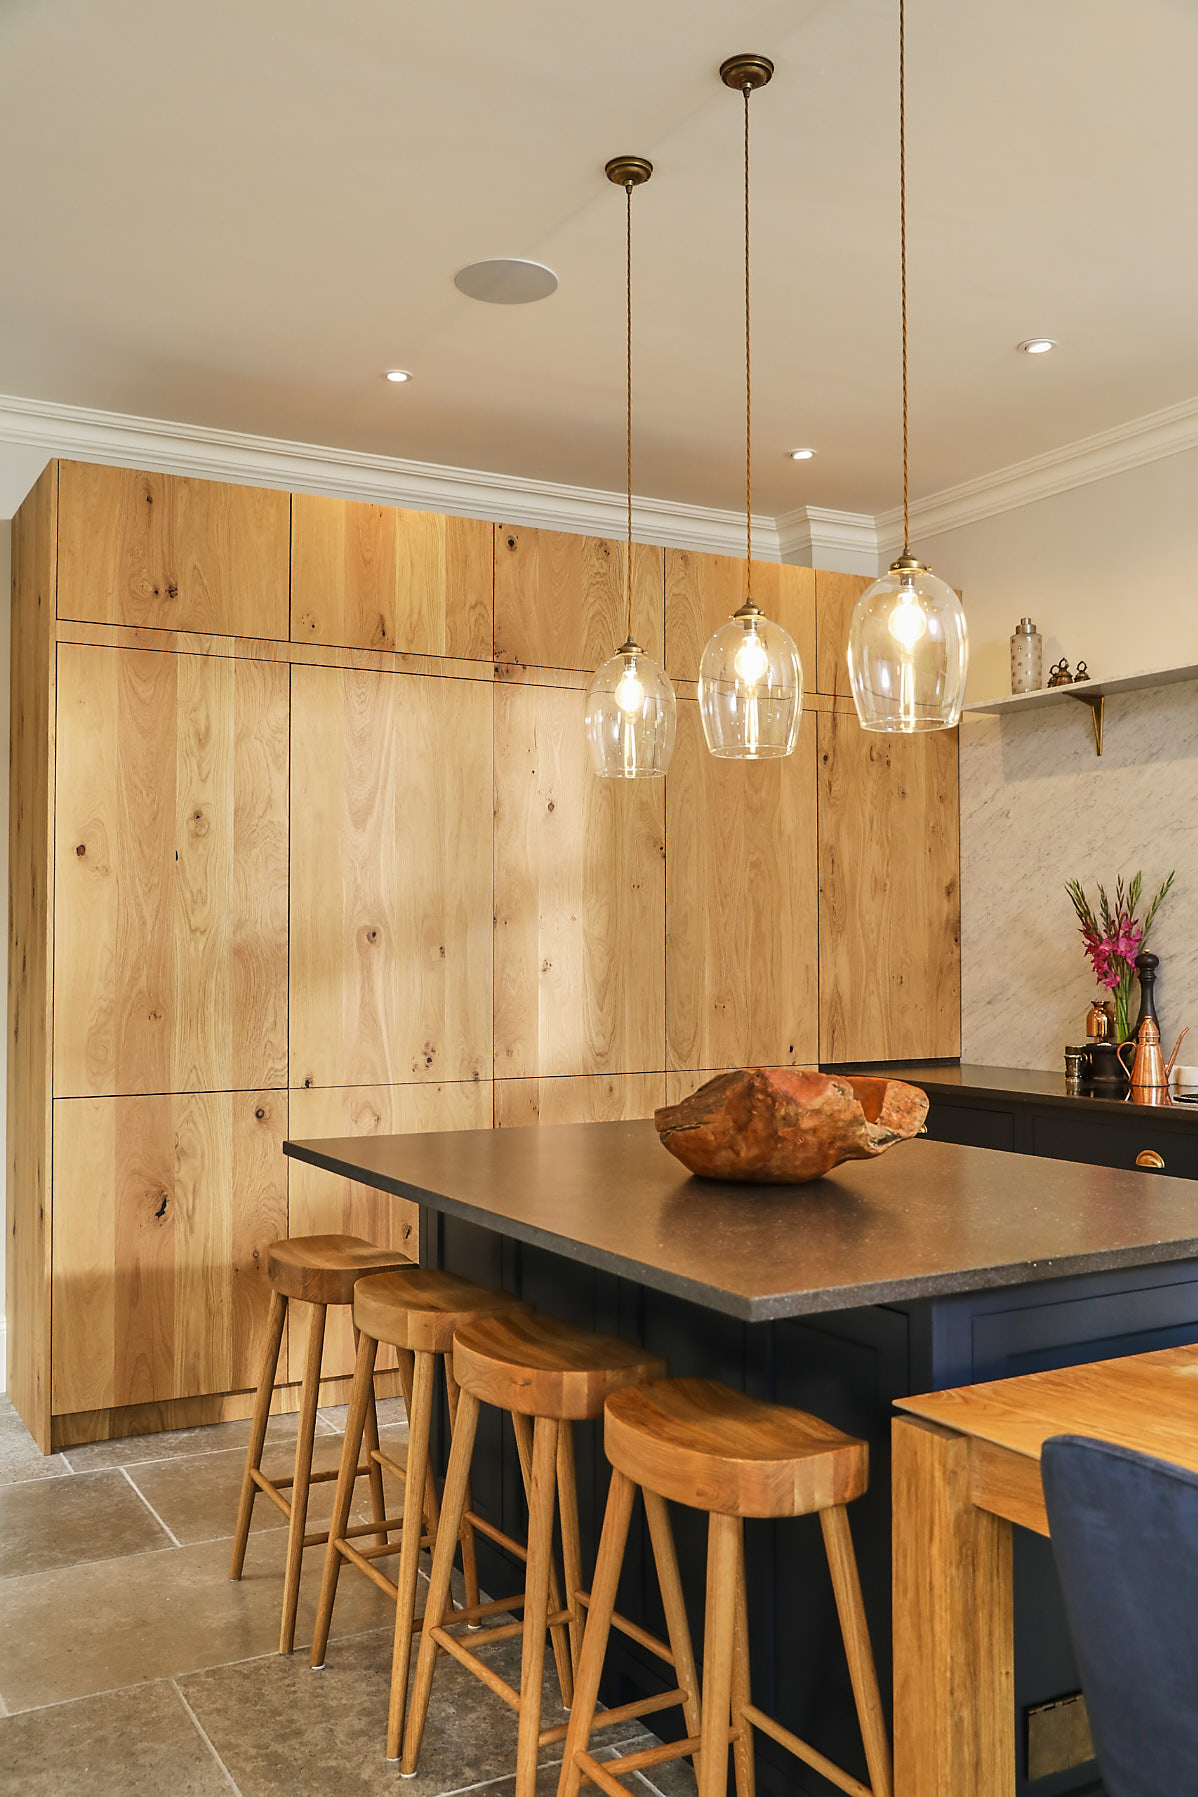 Glass pendant lights above kitchen island and oak farmhouse breakfast bar stools